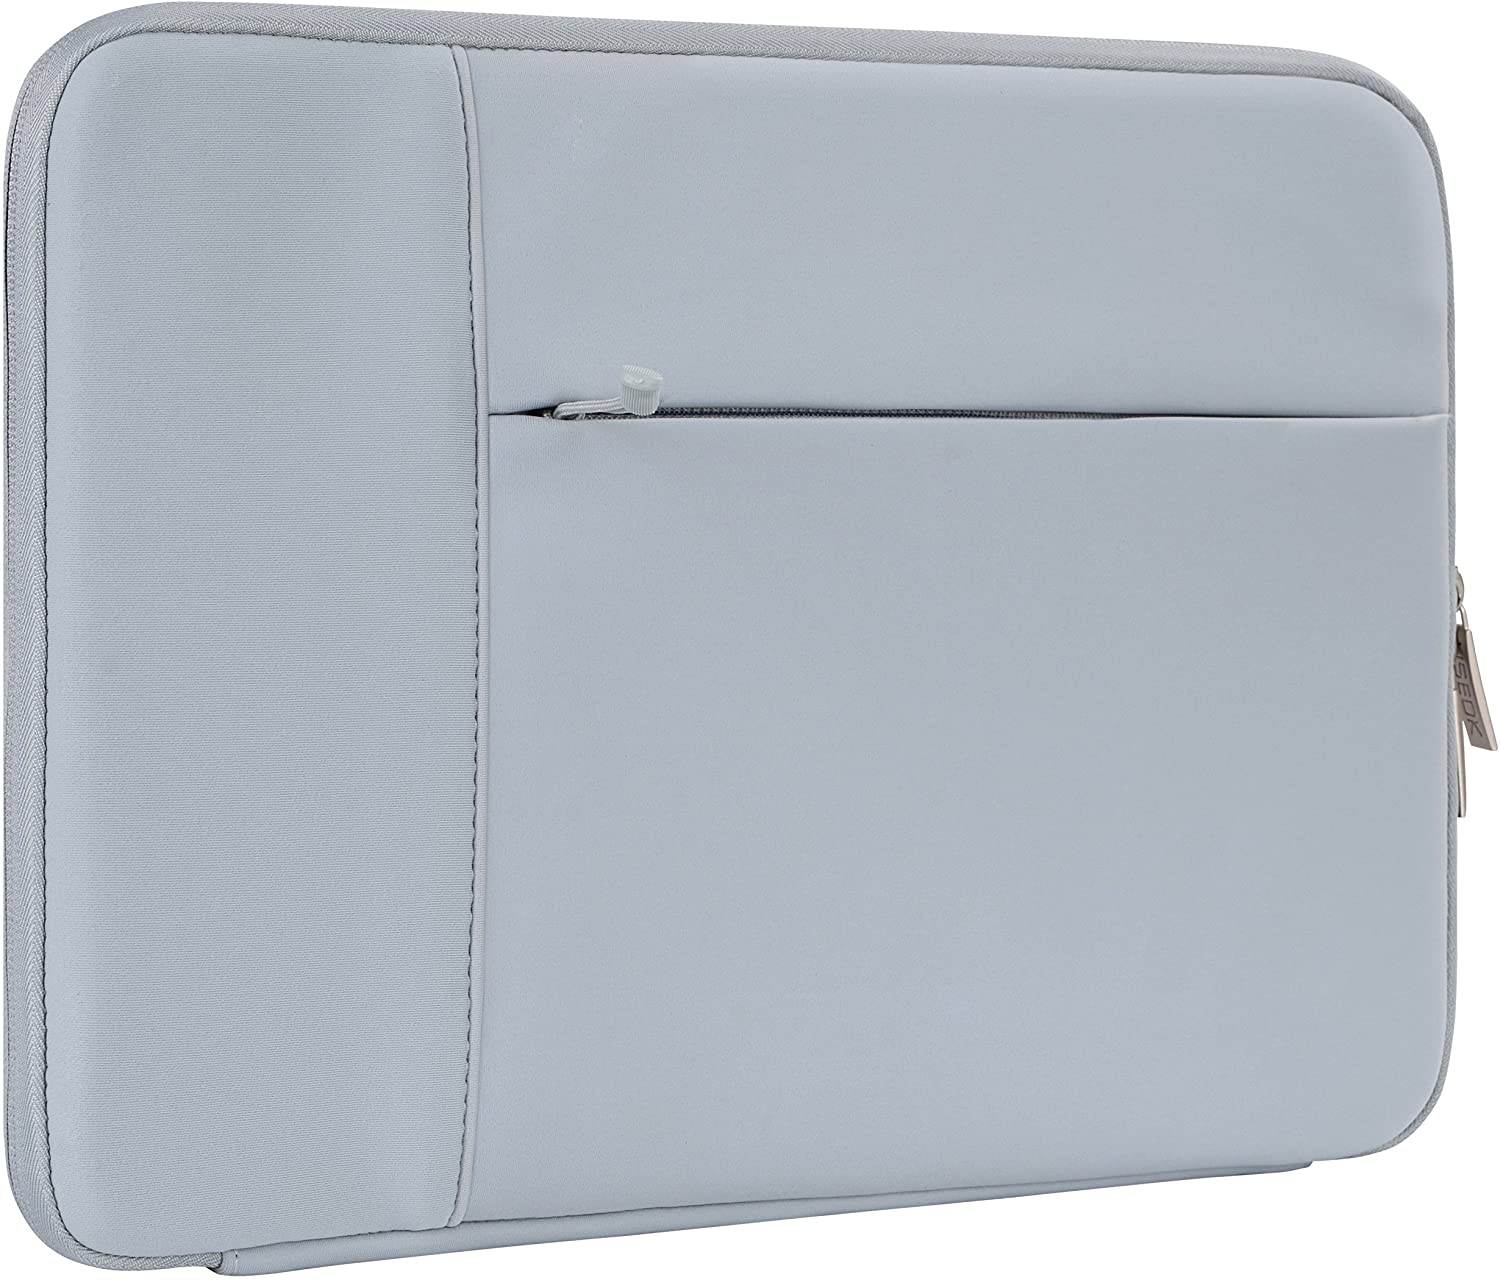 HSEOK 13-13.3 Inch Laptop Sleeve Case, Environmental-Friendly Spill-Resistant Sleeve for 13-Inch MacBook Air 2012-2017, MacBook Pro Retina 2012-2015/Pro 2012 A1278 and Most 14-Inch Laptop, Grey